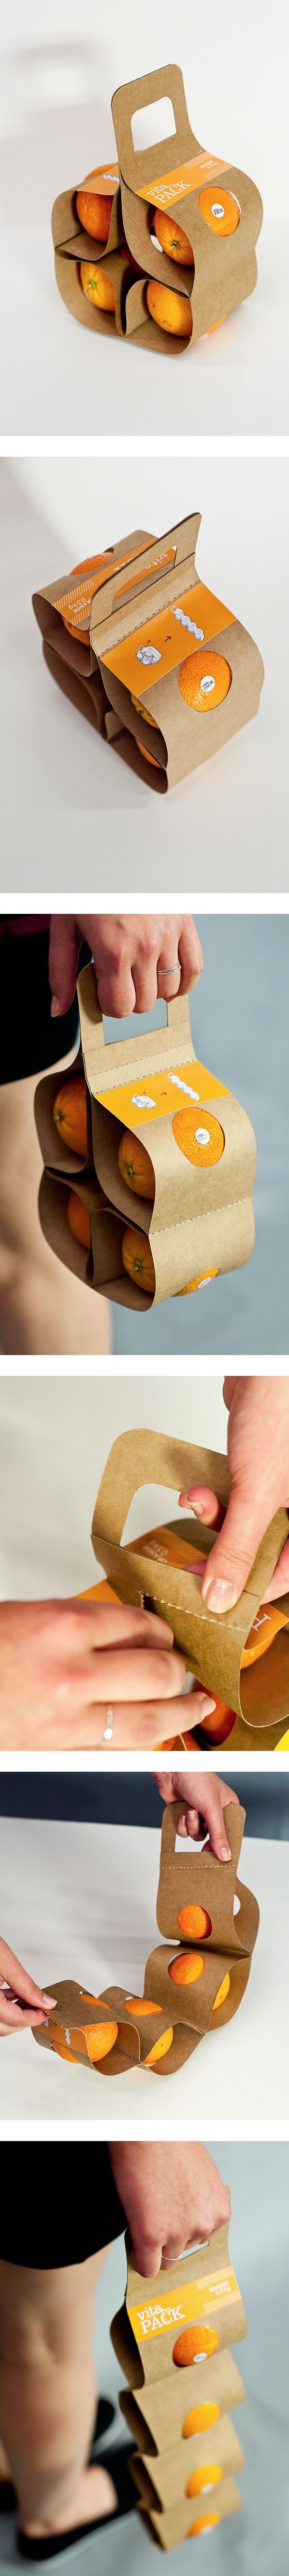 What will keep your precious fruit clean and bruise free? This packaging! You can carry fruit two different, easy ways.